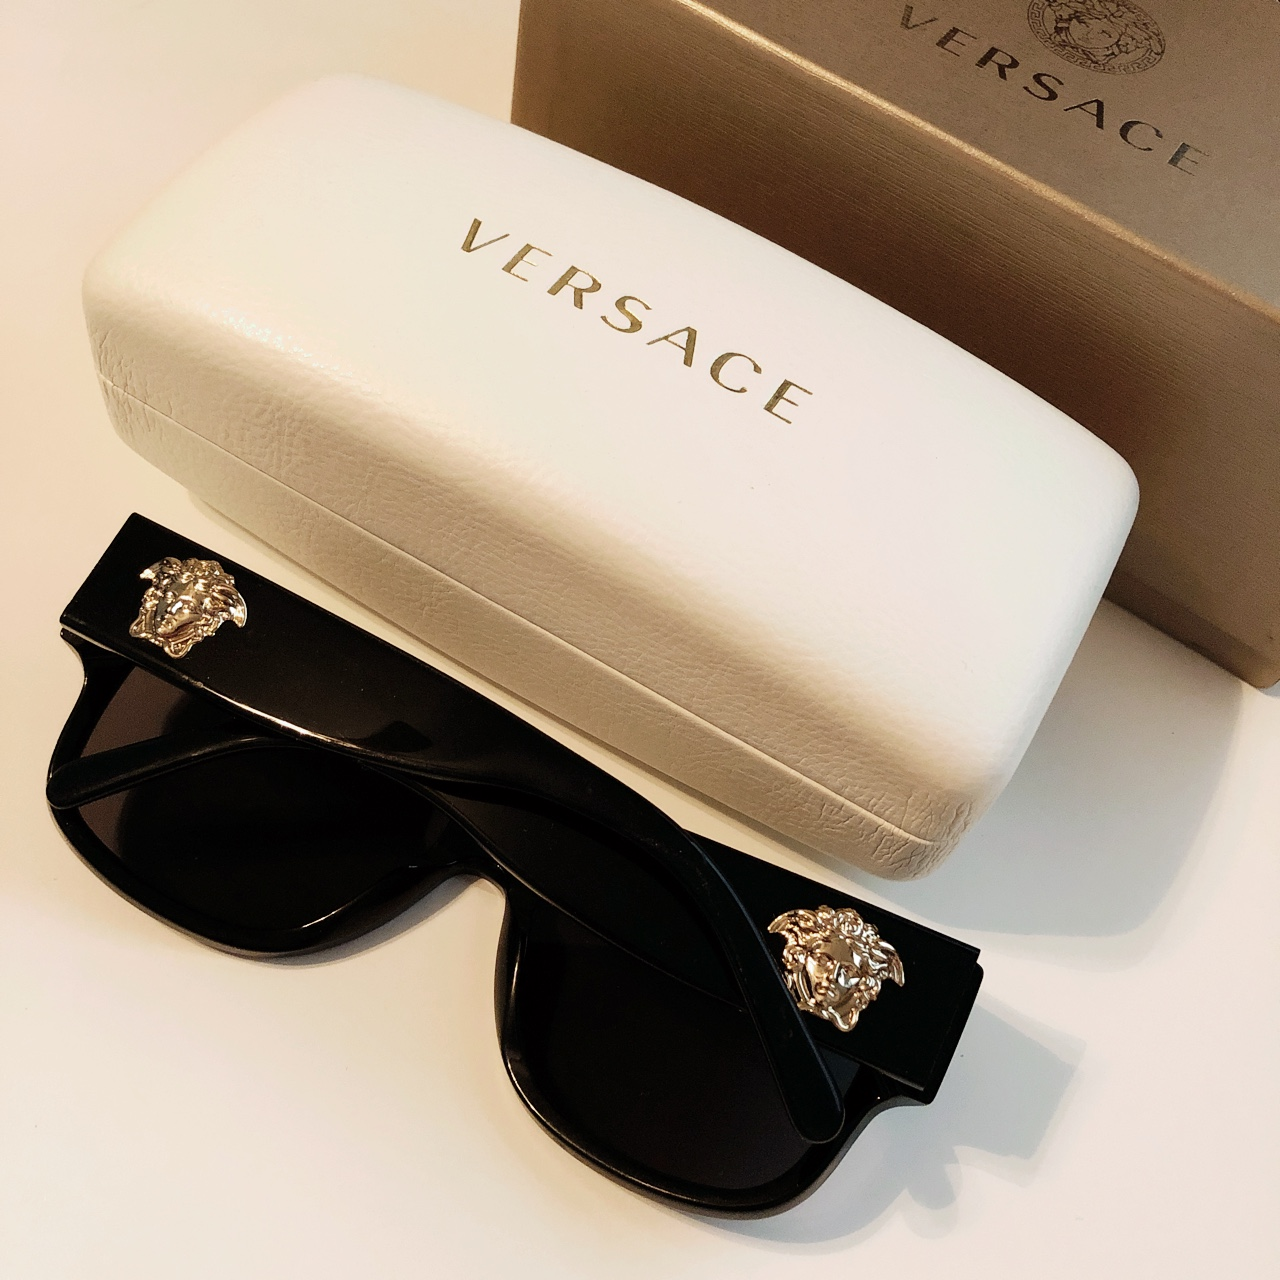 c8d9cadada90 j991. Oxford, United States. Versace sunglasses Brand New polorized  Purchased ...